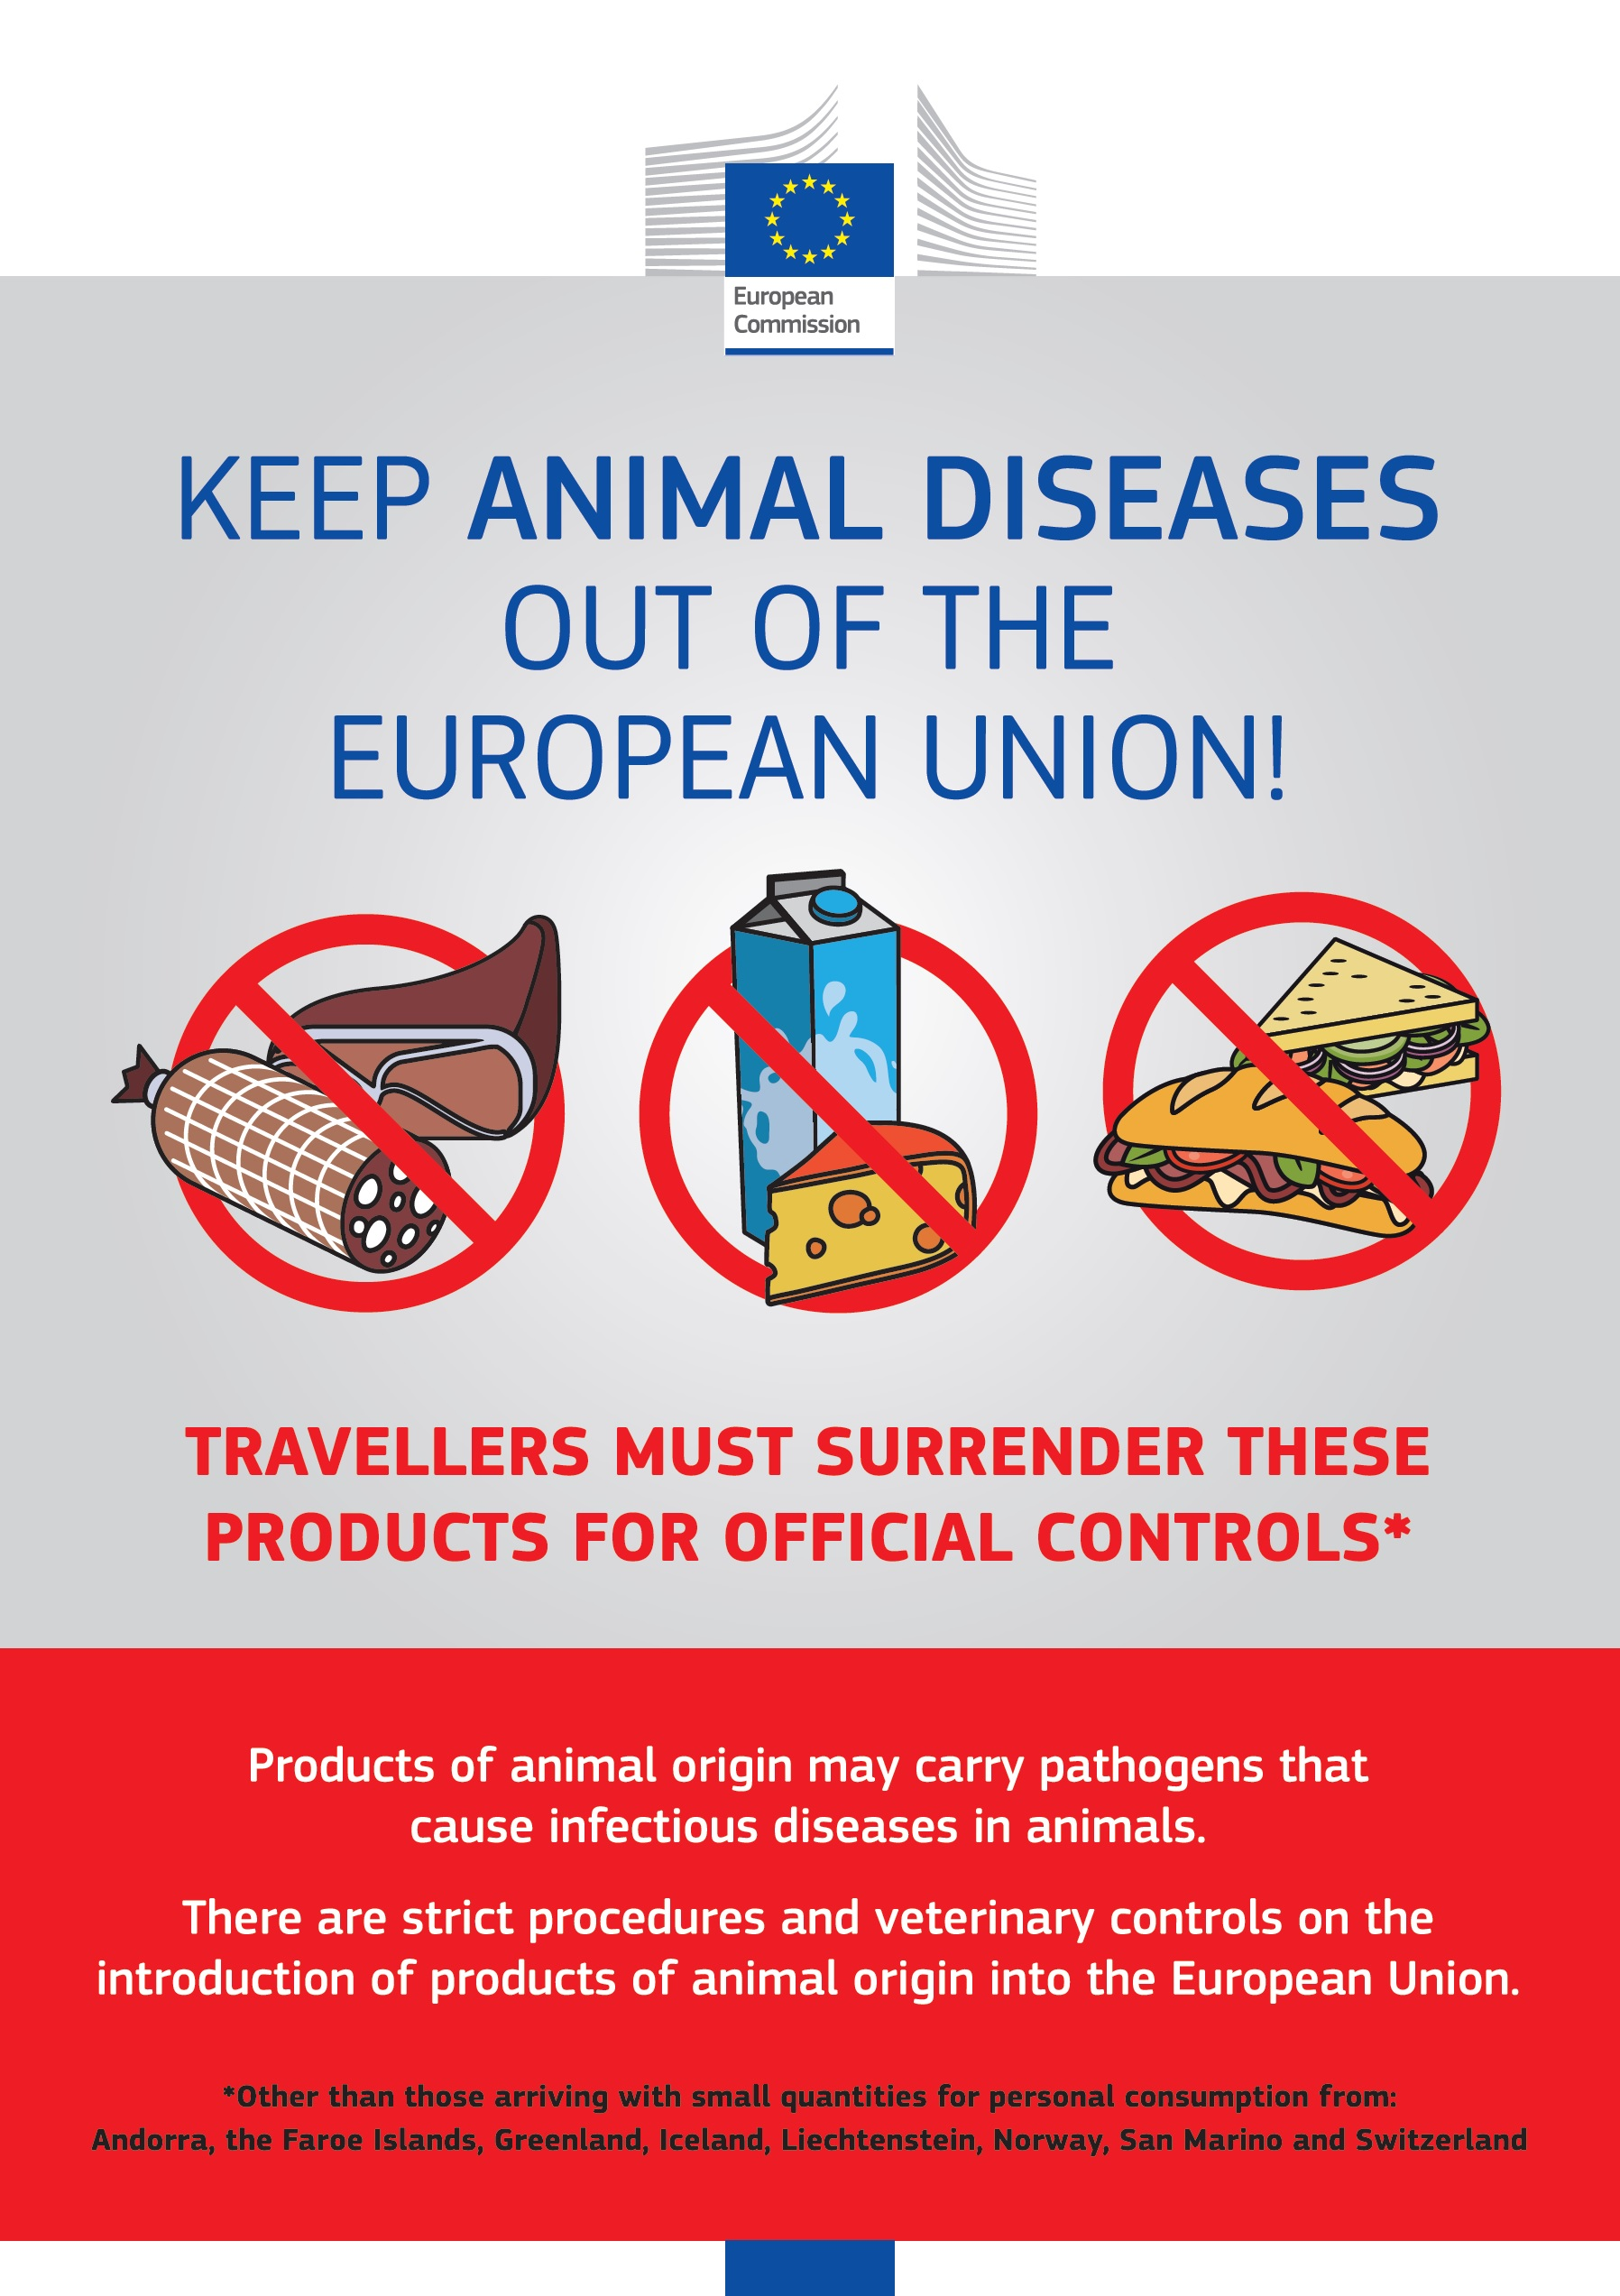 Keep animal diseases out of the European Union